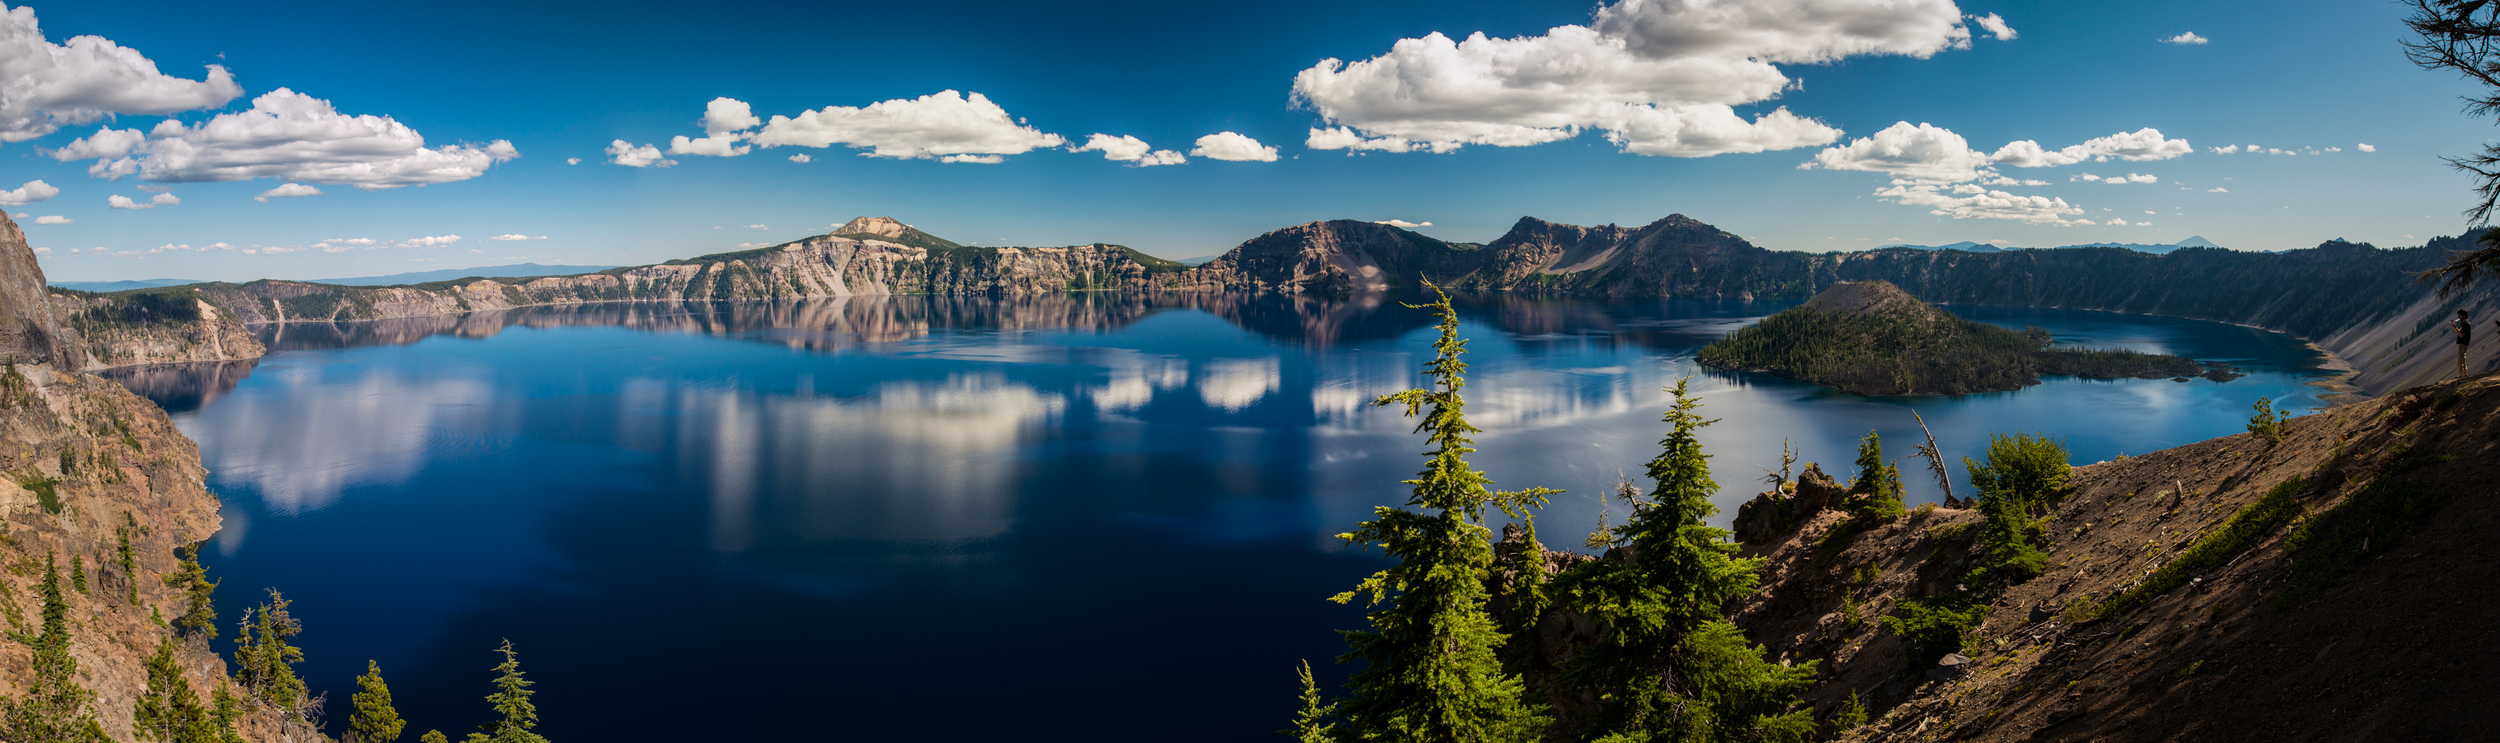 Crater Lake National Park, Oregon - September 7, 2013